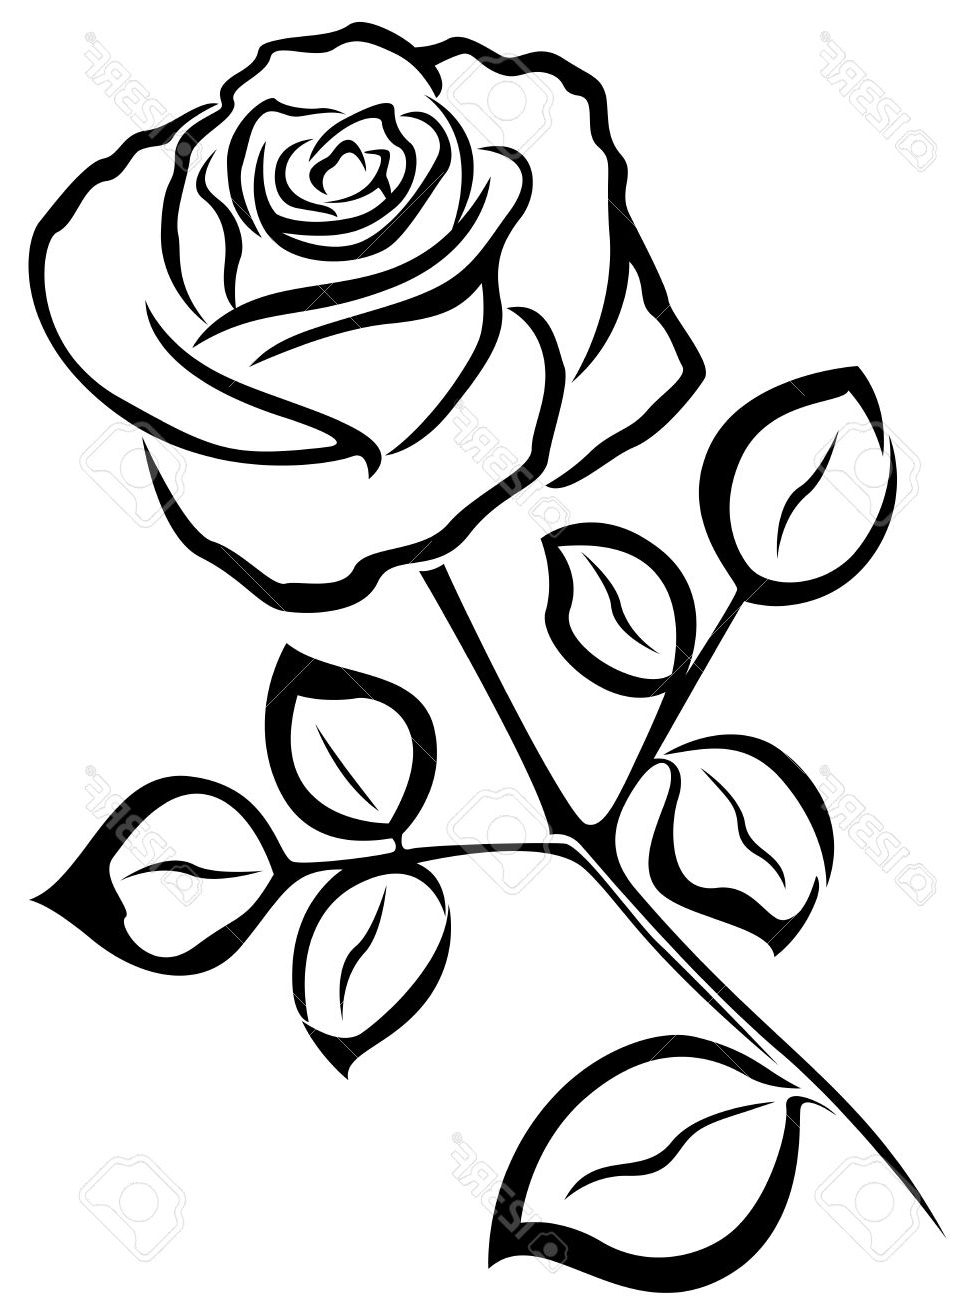 Flowers black and white drawing at getdrawings free for 975x1300 rose flower black and white drawing black vector outline of single mightylinksfo